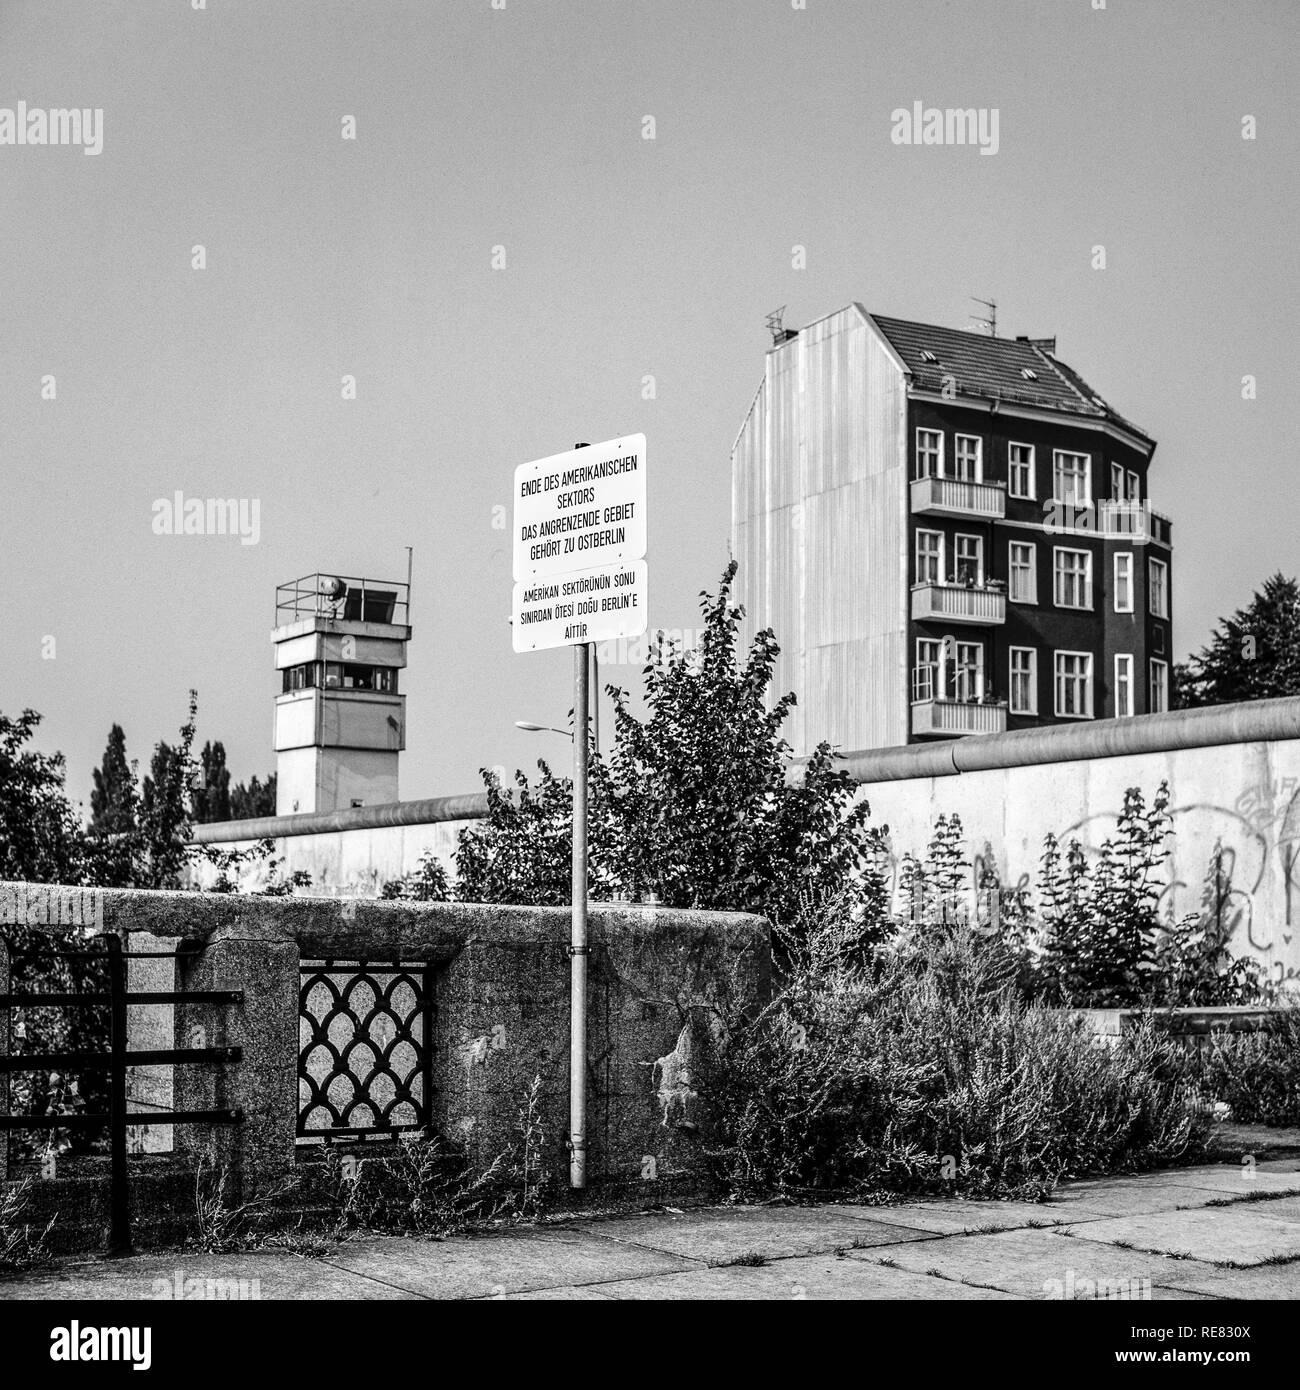 August 1986, Berlin Wall, warning sign for end of American sector, East Berlin watchtower, West Berlin side, Germany, Europe, - Stock Image